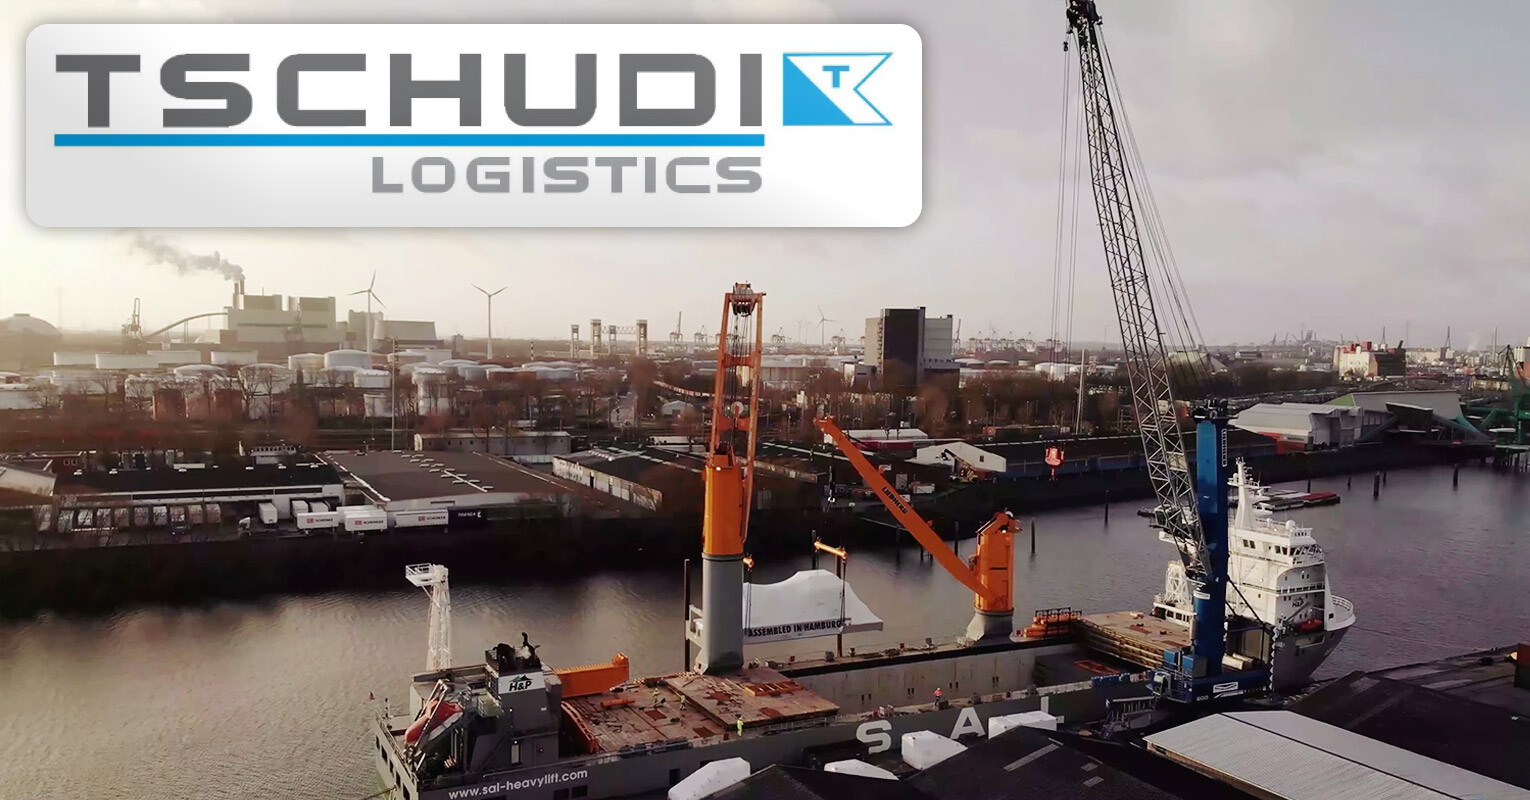 Tschudi Team in Sweden Completed a Major Project